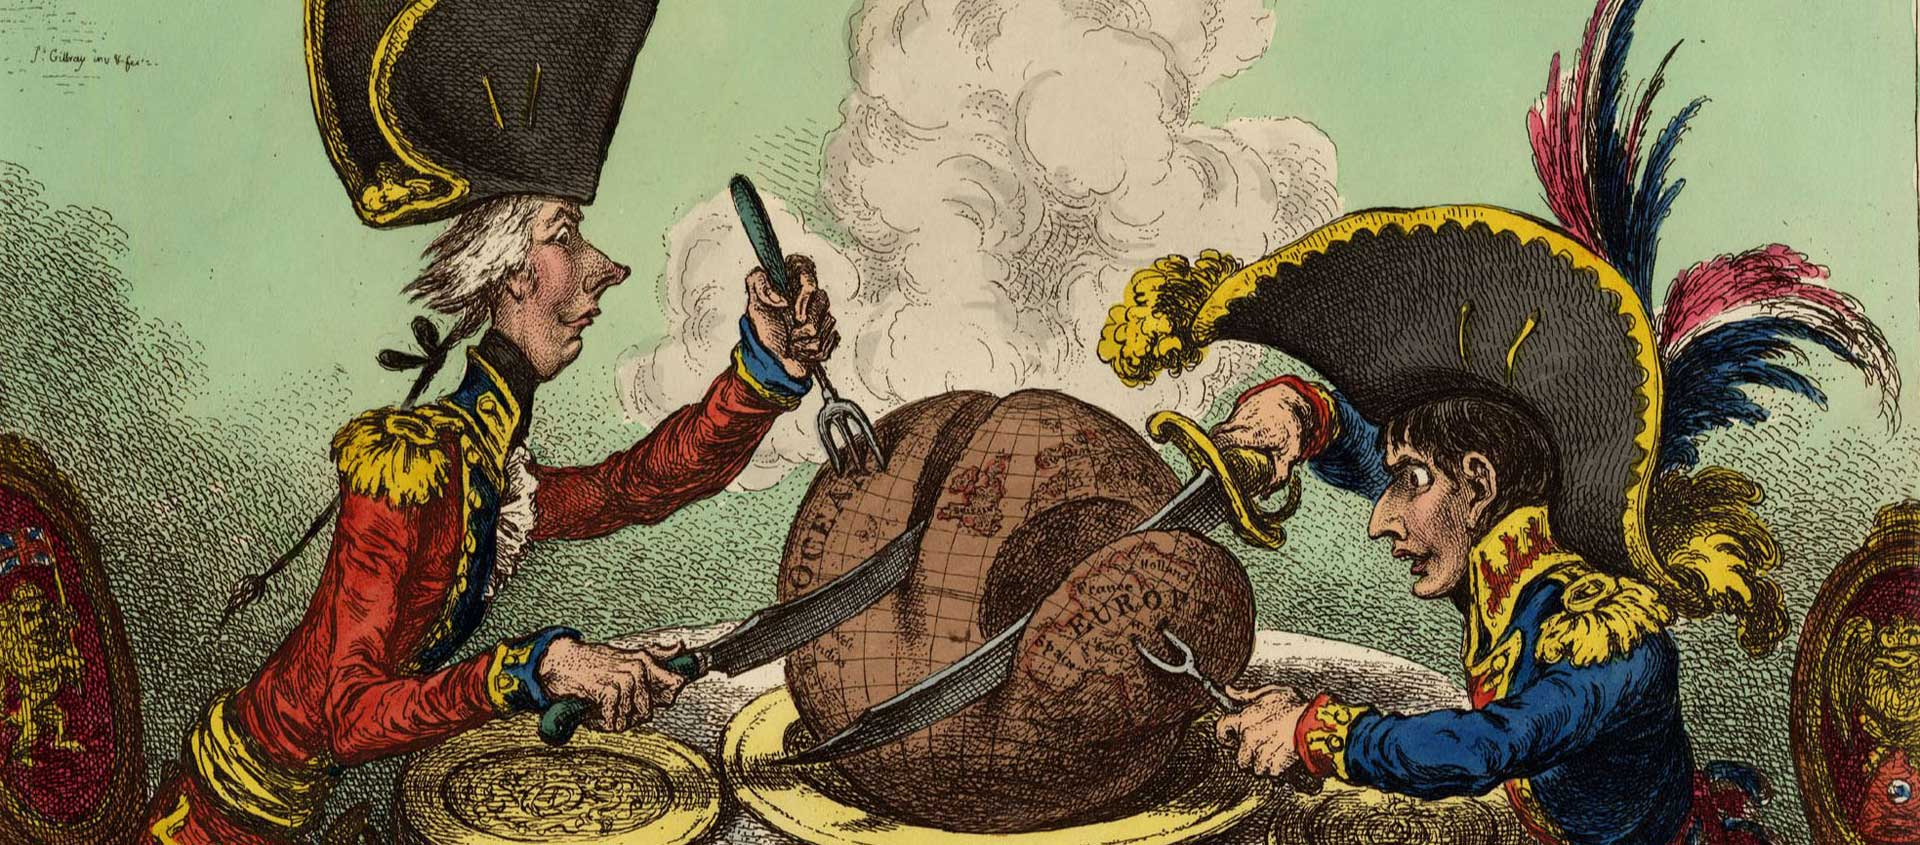 PRINTS AND PROPAGANDA IN THE AGE OF NAPOLEON